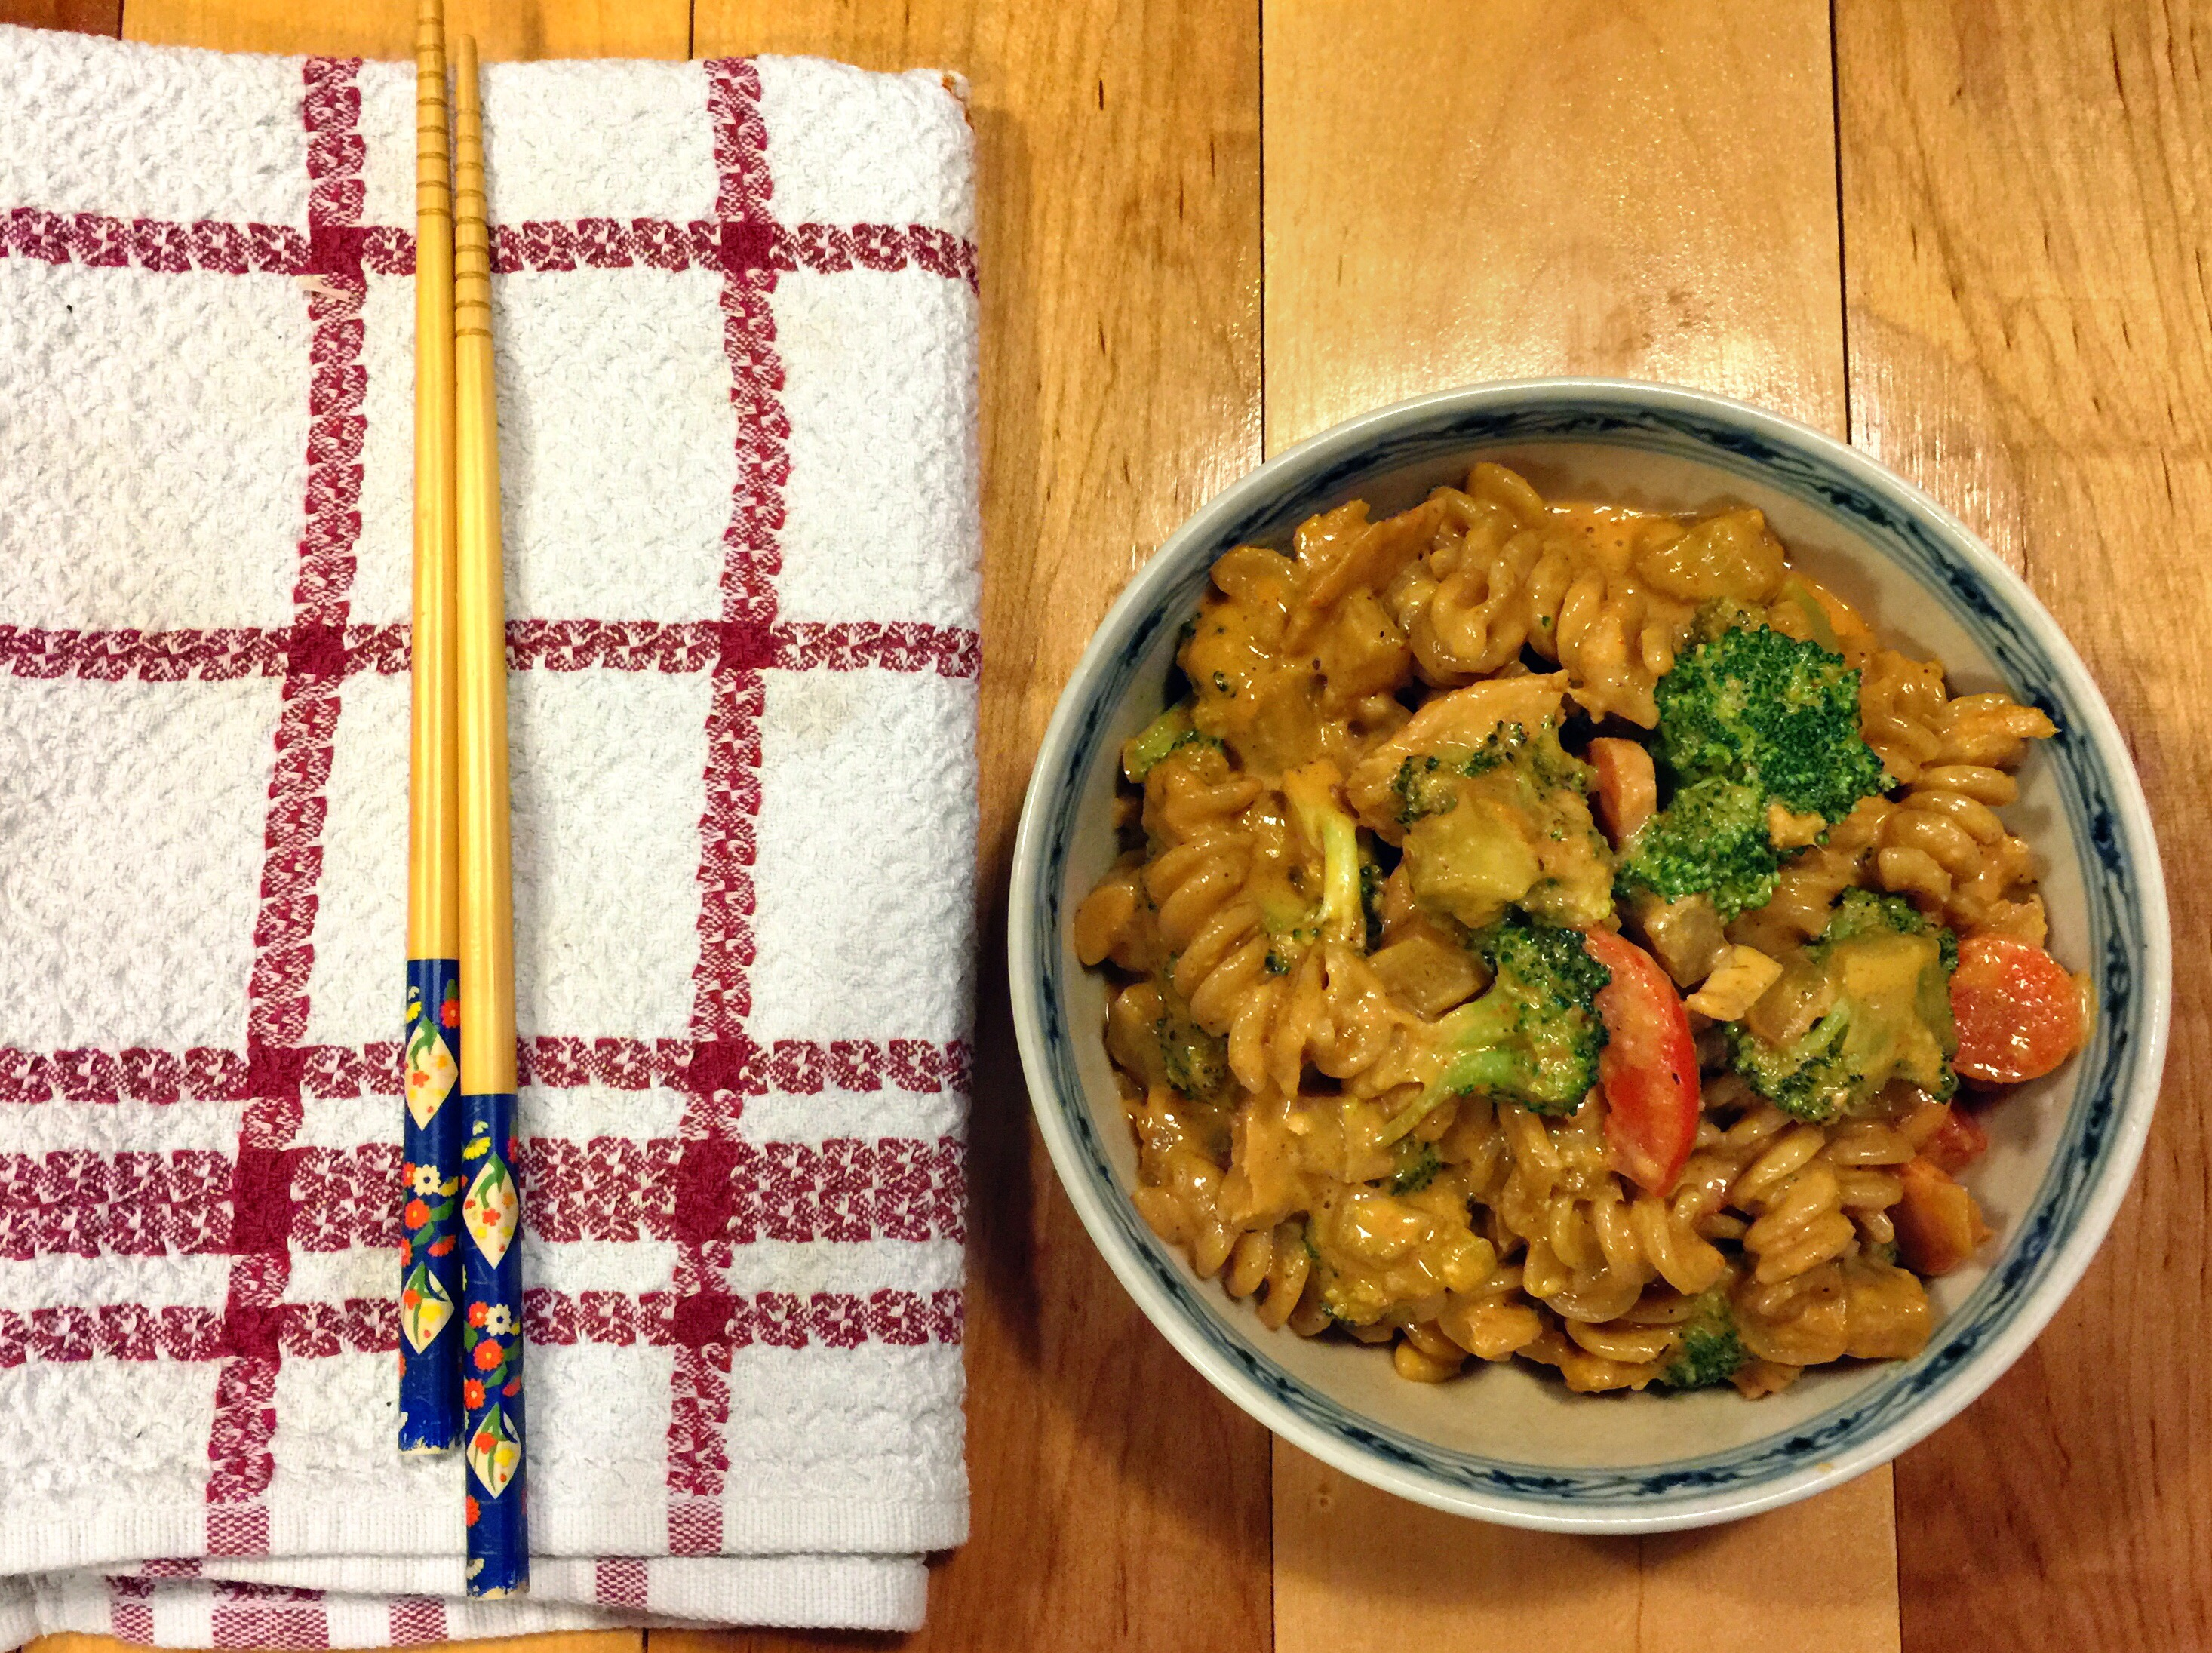 spicy peanut pasta served with chopsticks